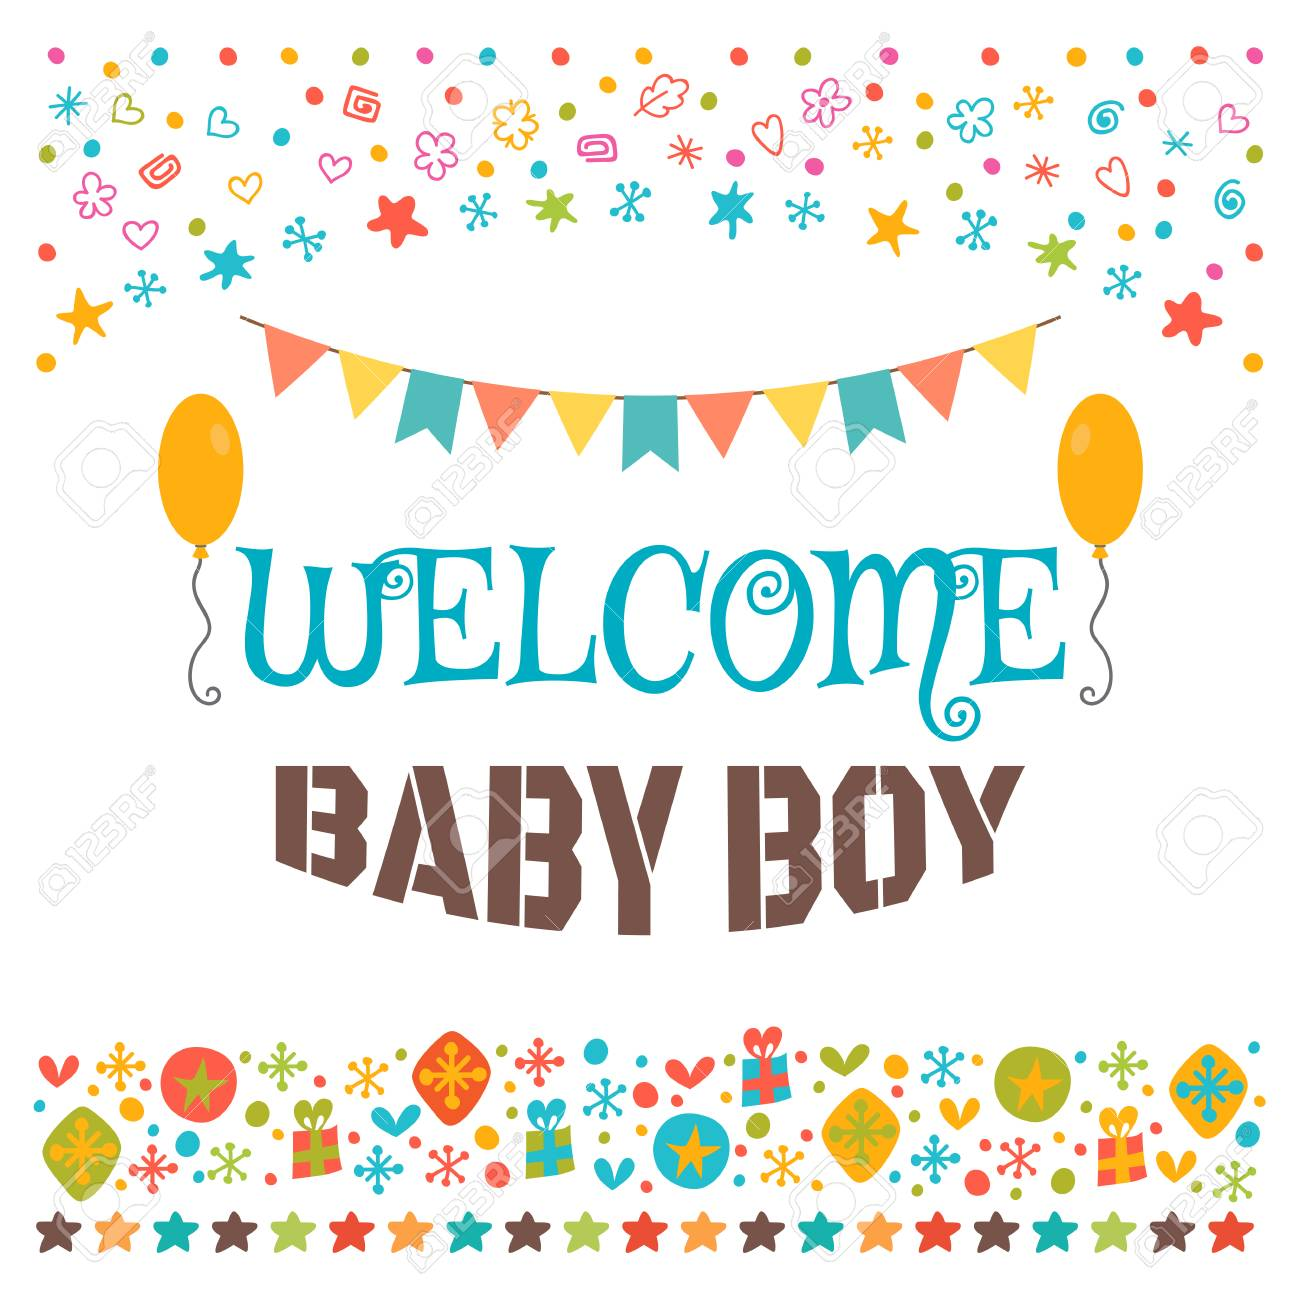 Welcome baby boy announcement card baby shower greeting card vector welcome baby boy announcement card baby shower greeting card baby boy shower card baby boy arrival postcard vector illustration m4hsunfo